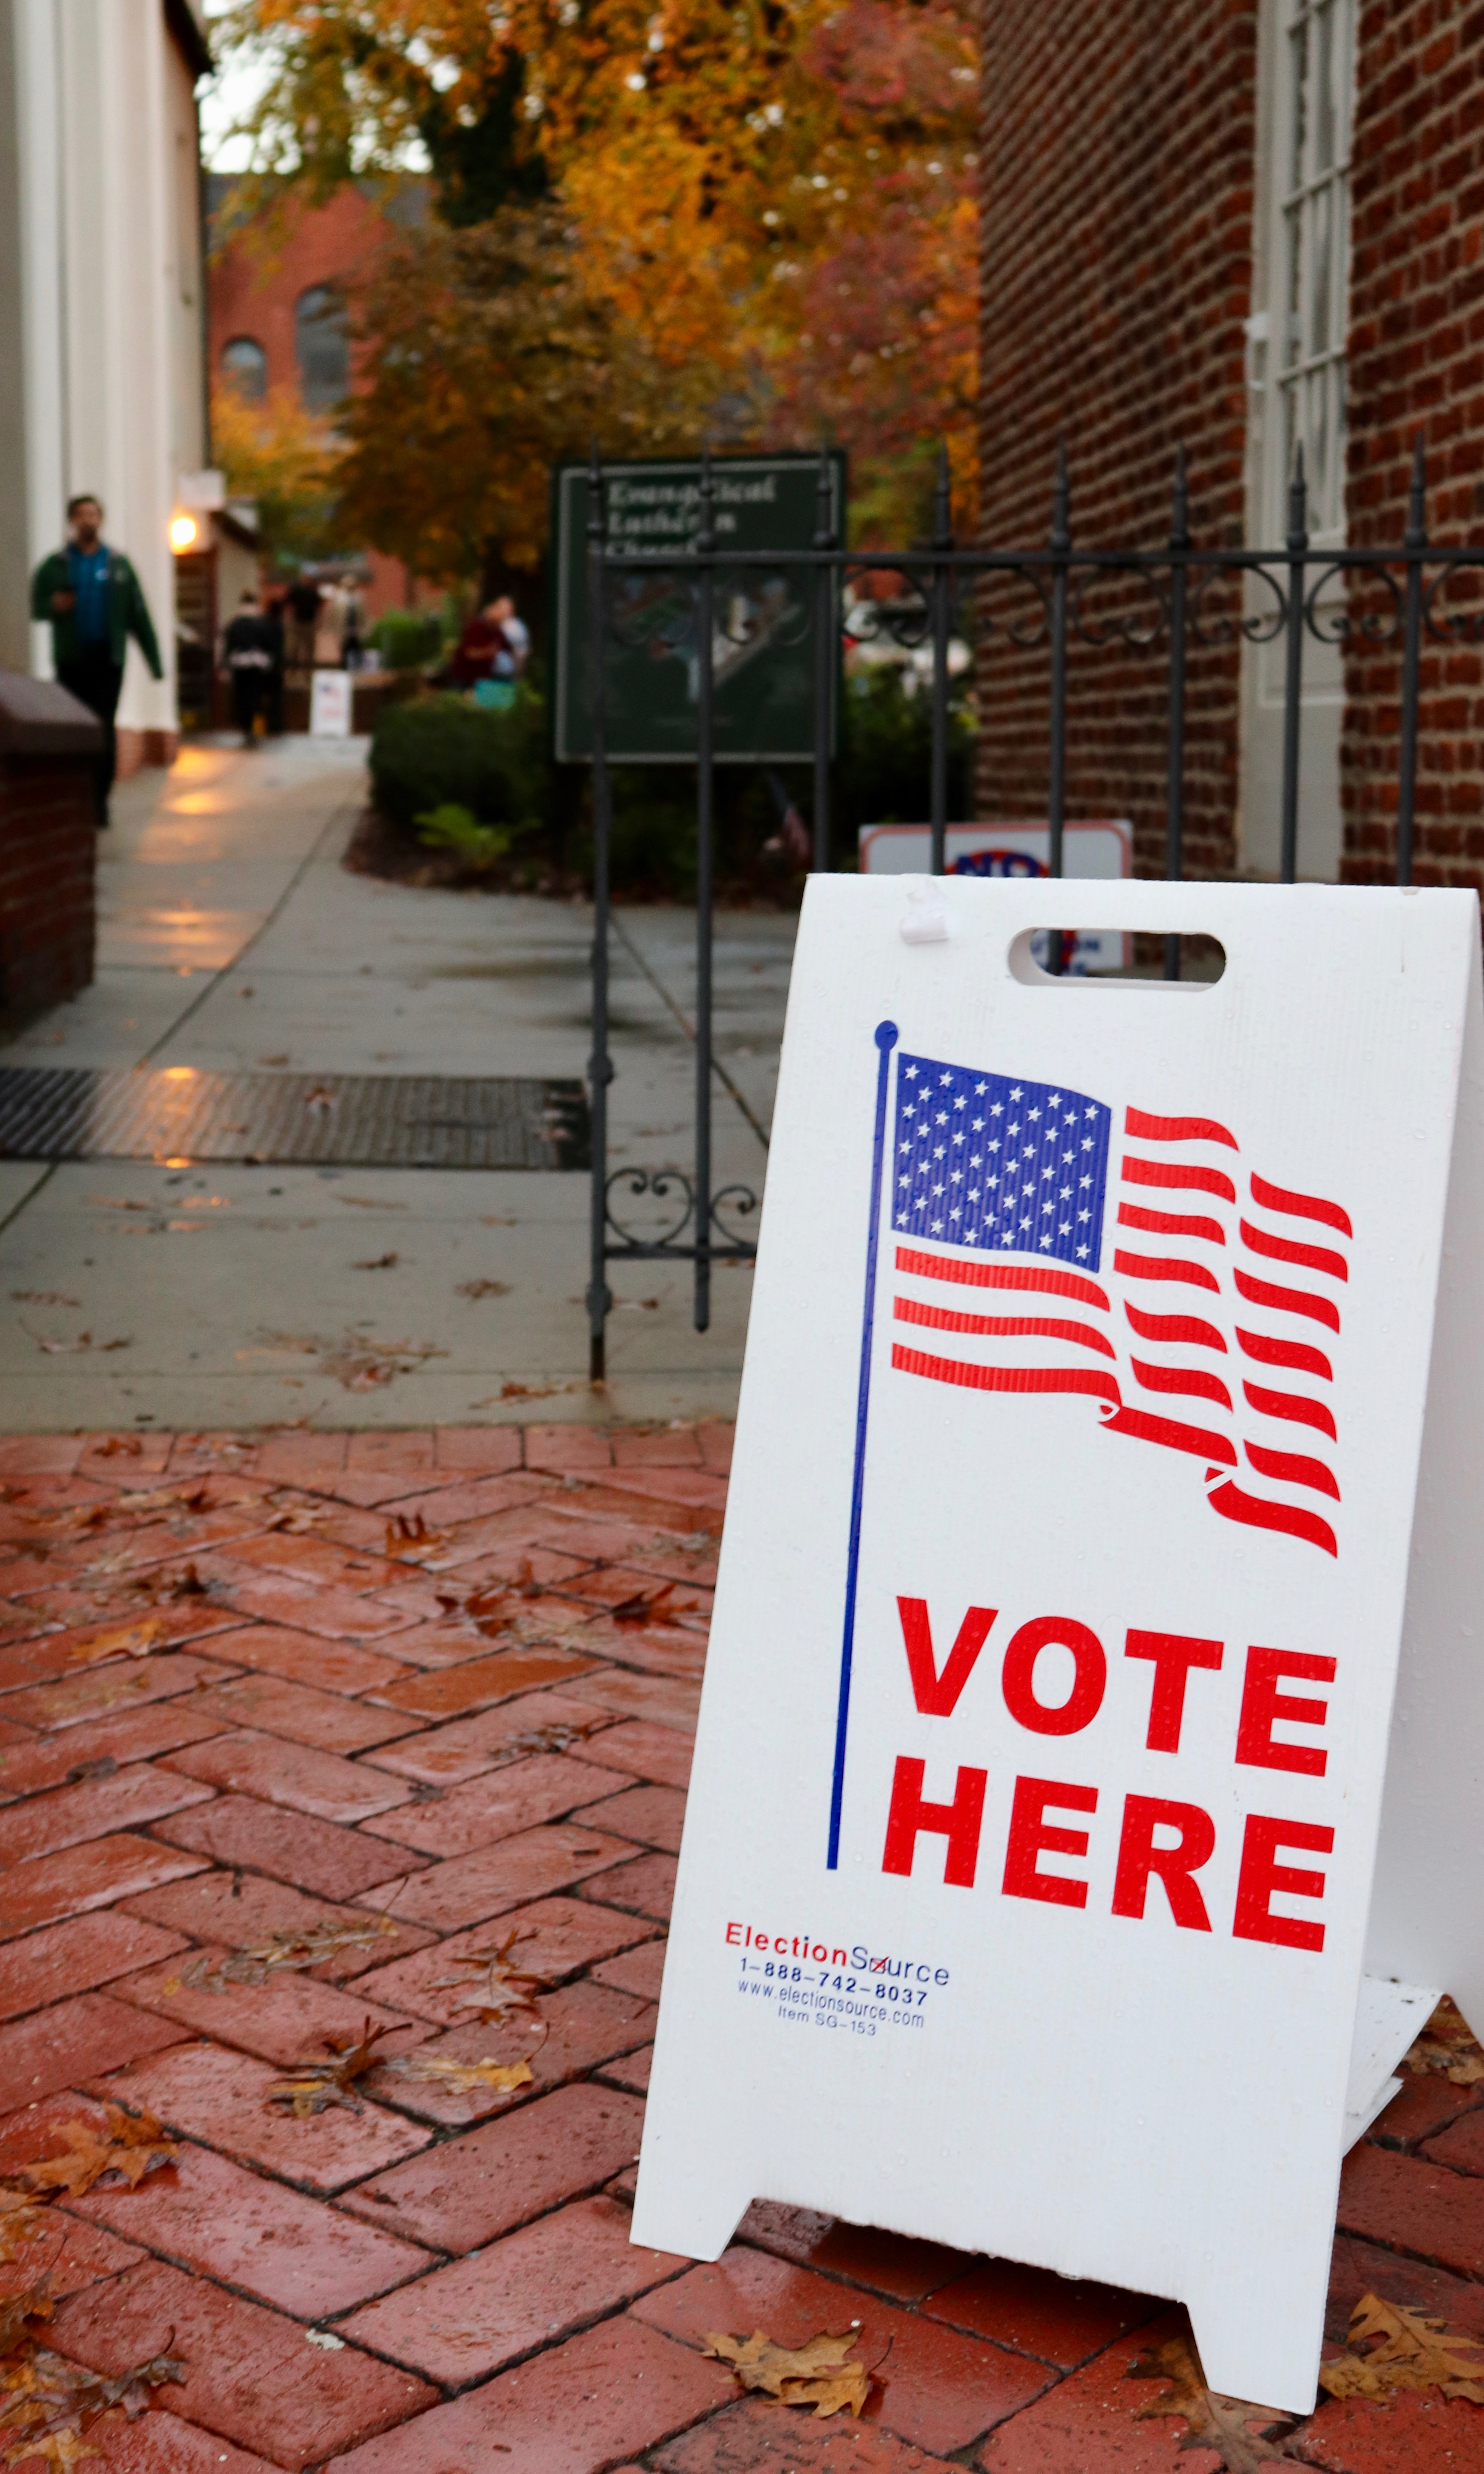 A polling station at the Evangelical Lutheran Church on Tuesday, Nov. 6, 2018 in Frederick Maryland. (Albane Guichard/Capital News Service)